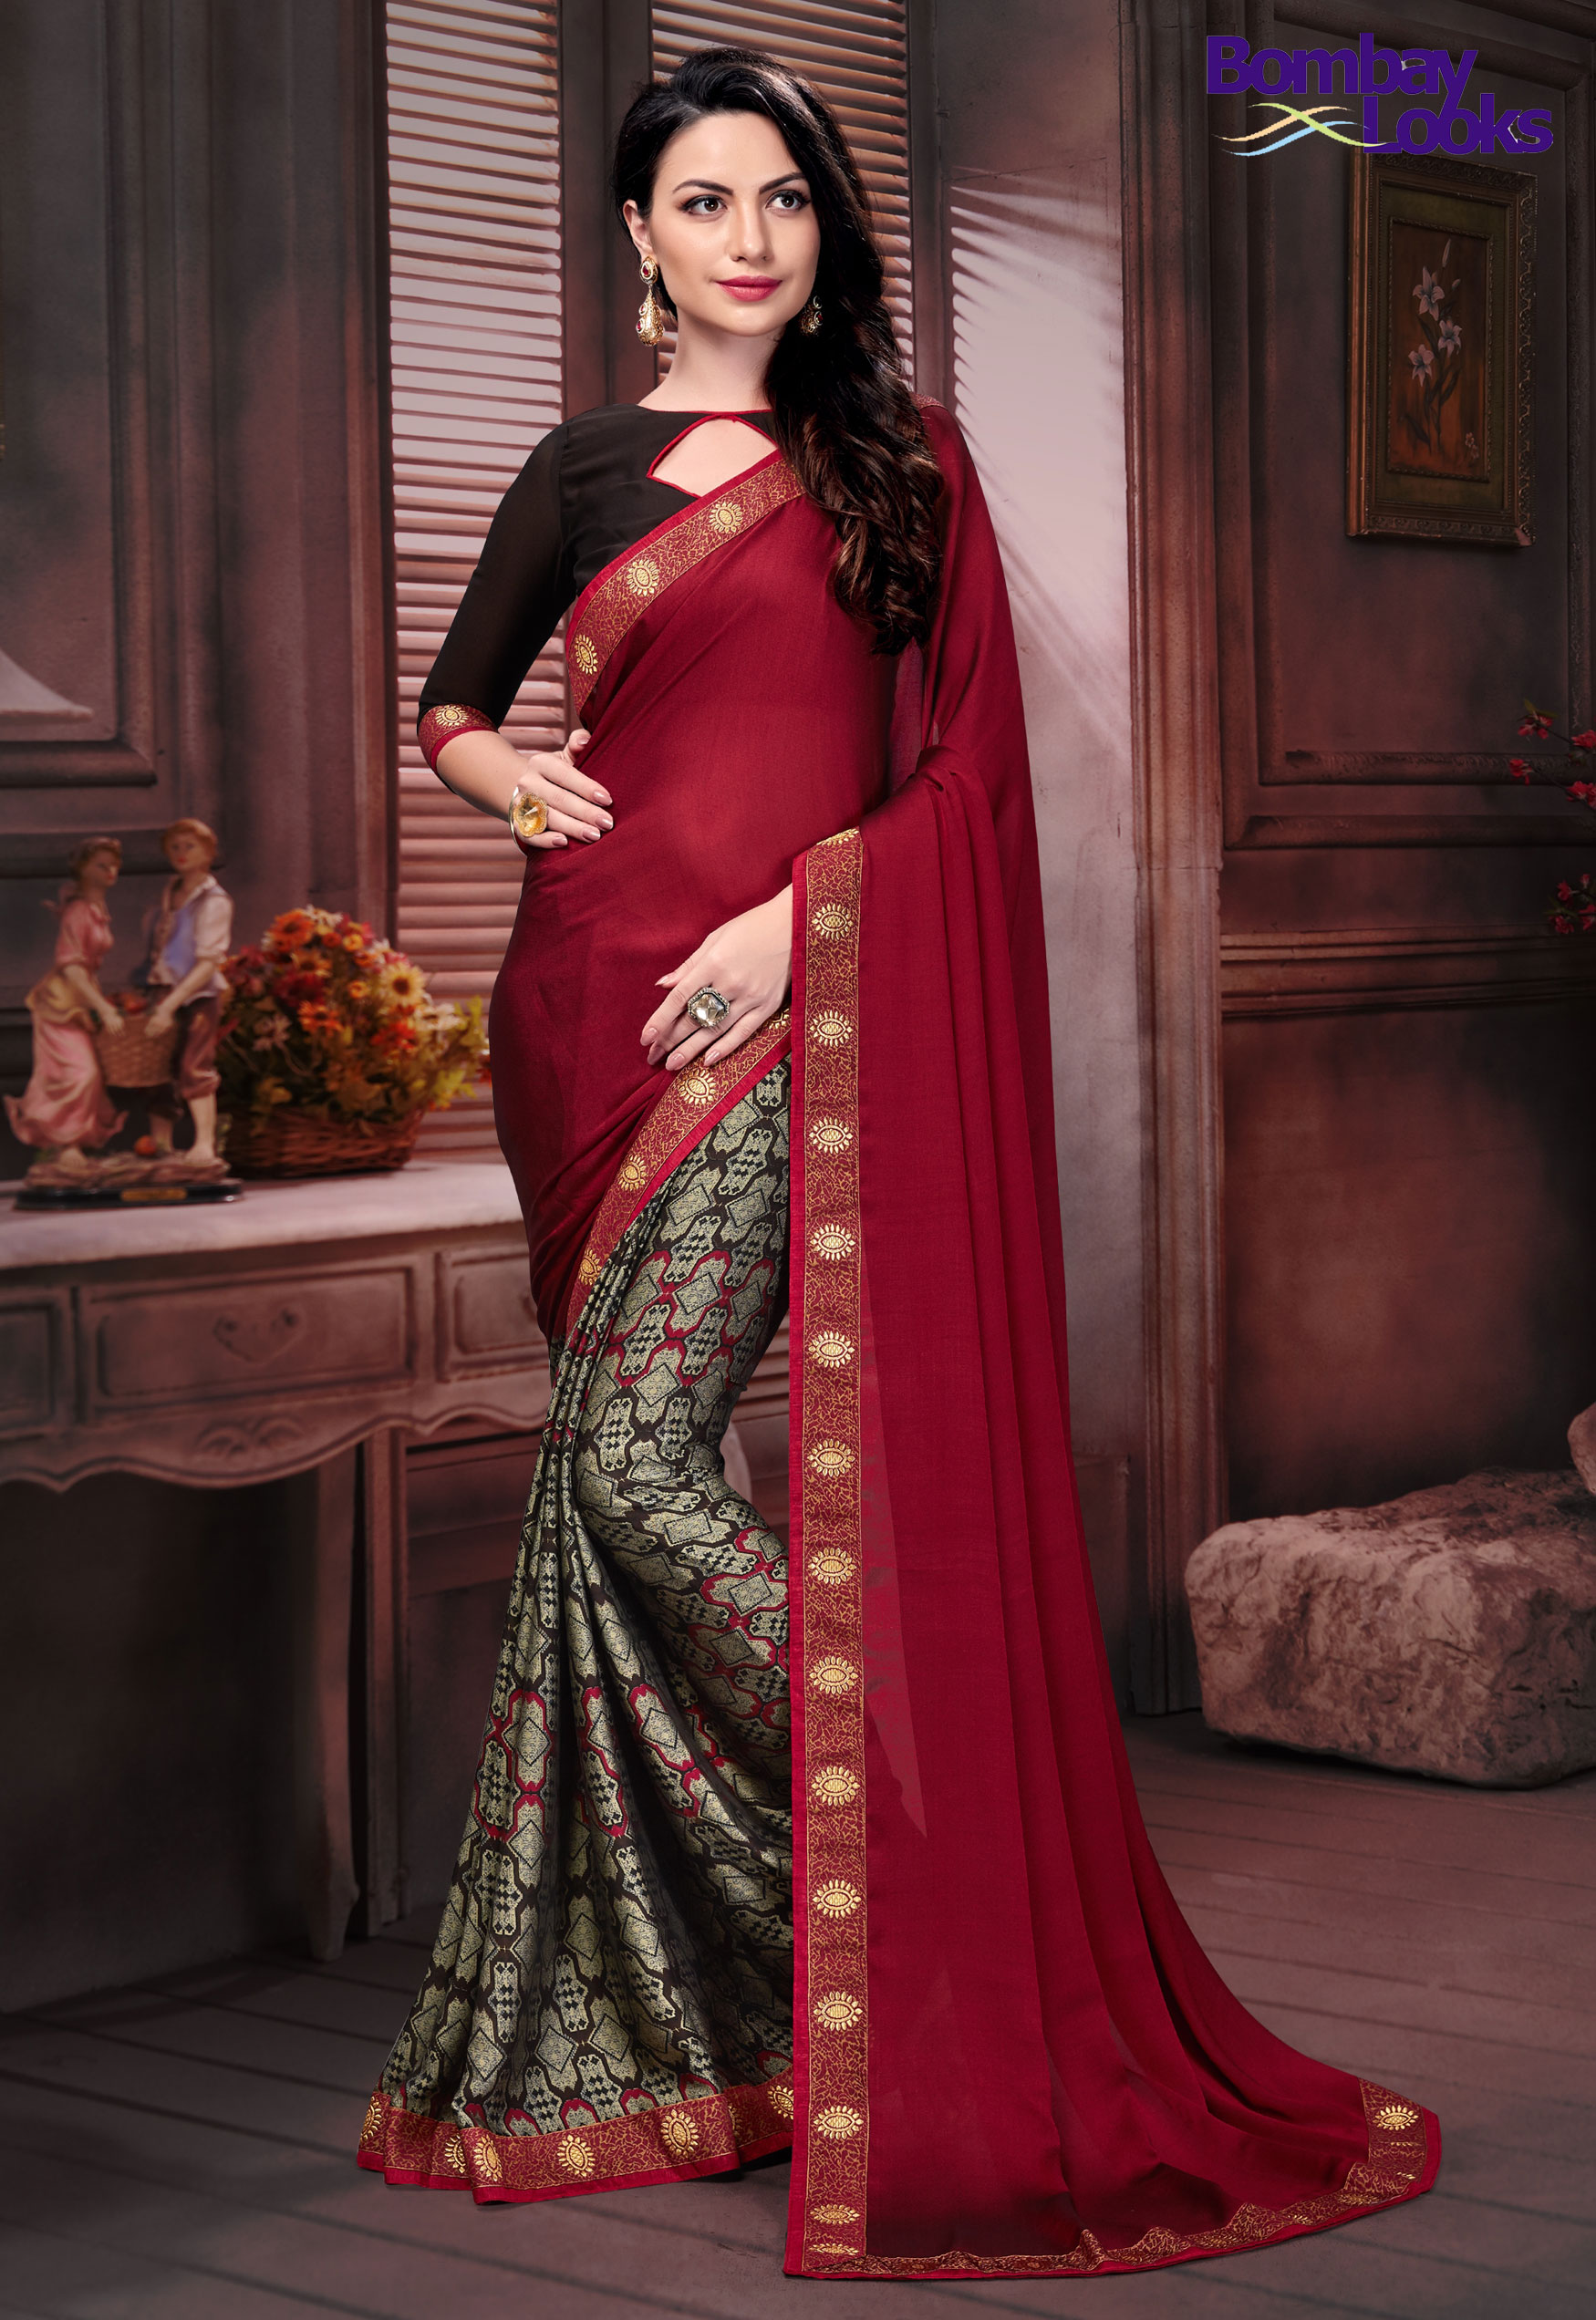 Half Plain and half Print saree in maroon & brown